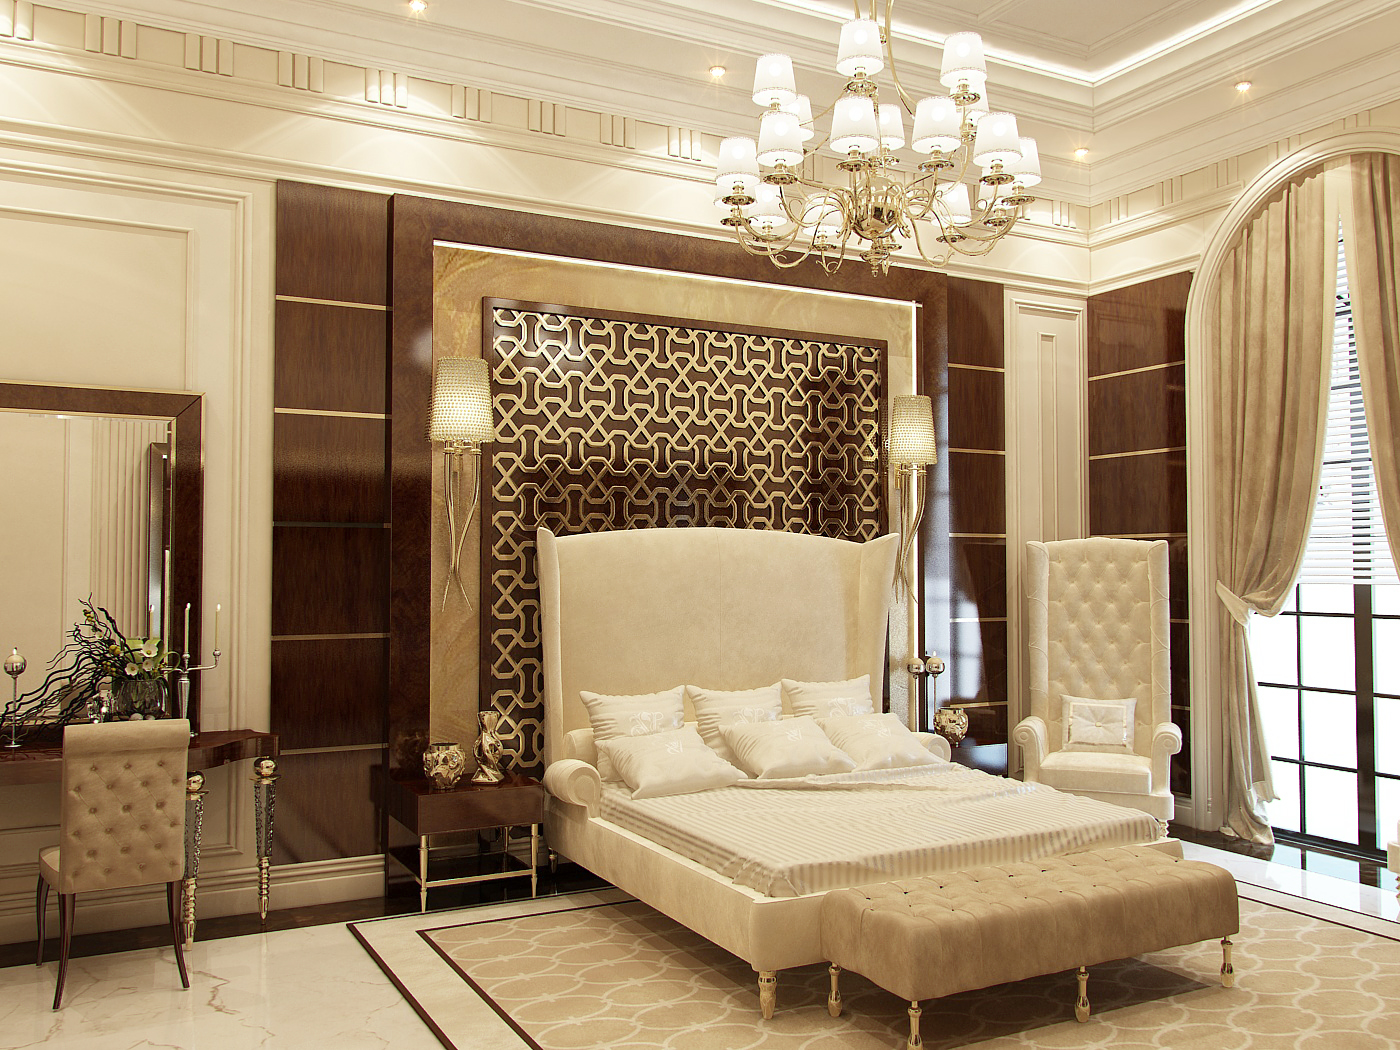 Luxury antonovich design uae interior design dubai from for Modern home decor dubai